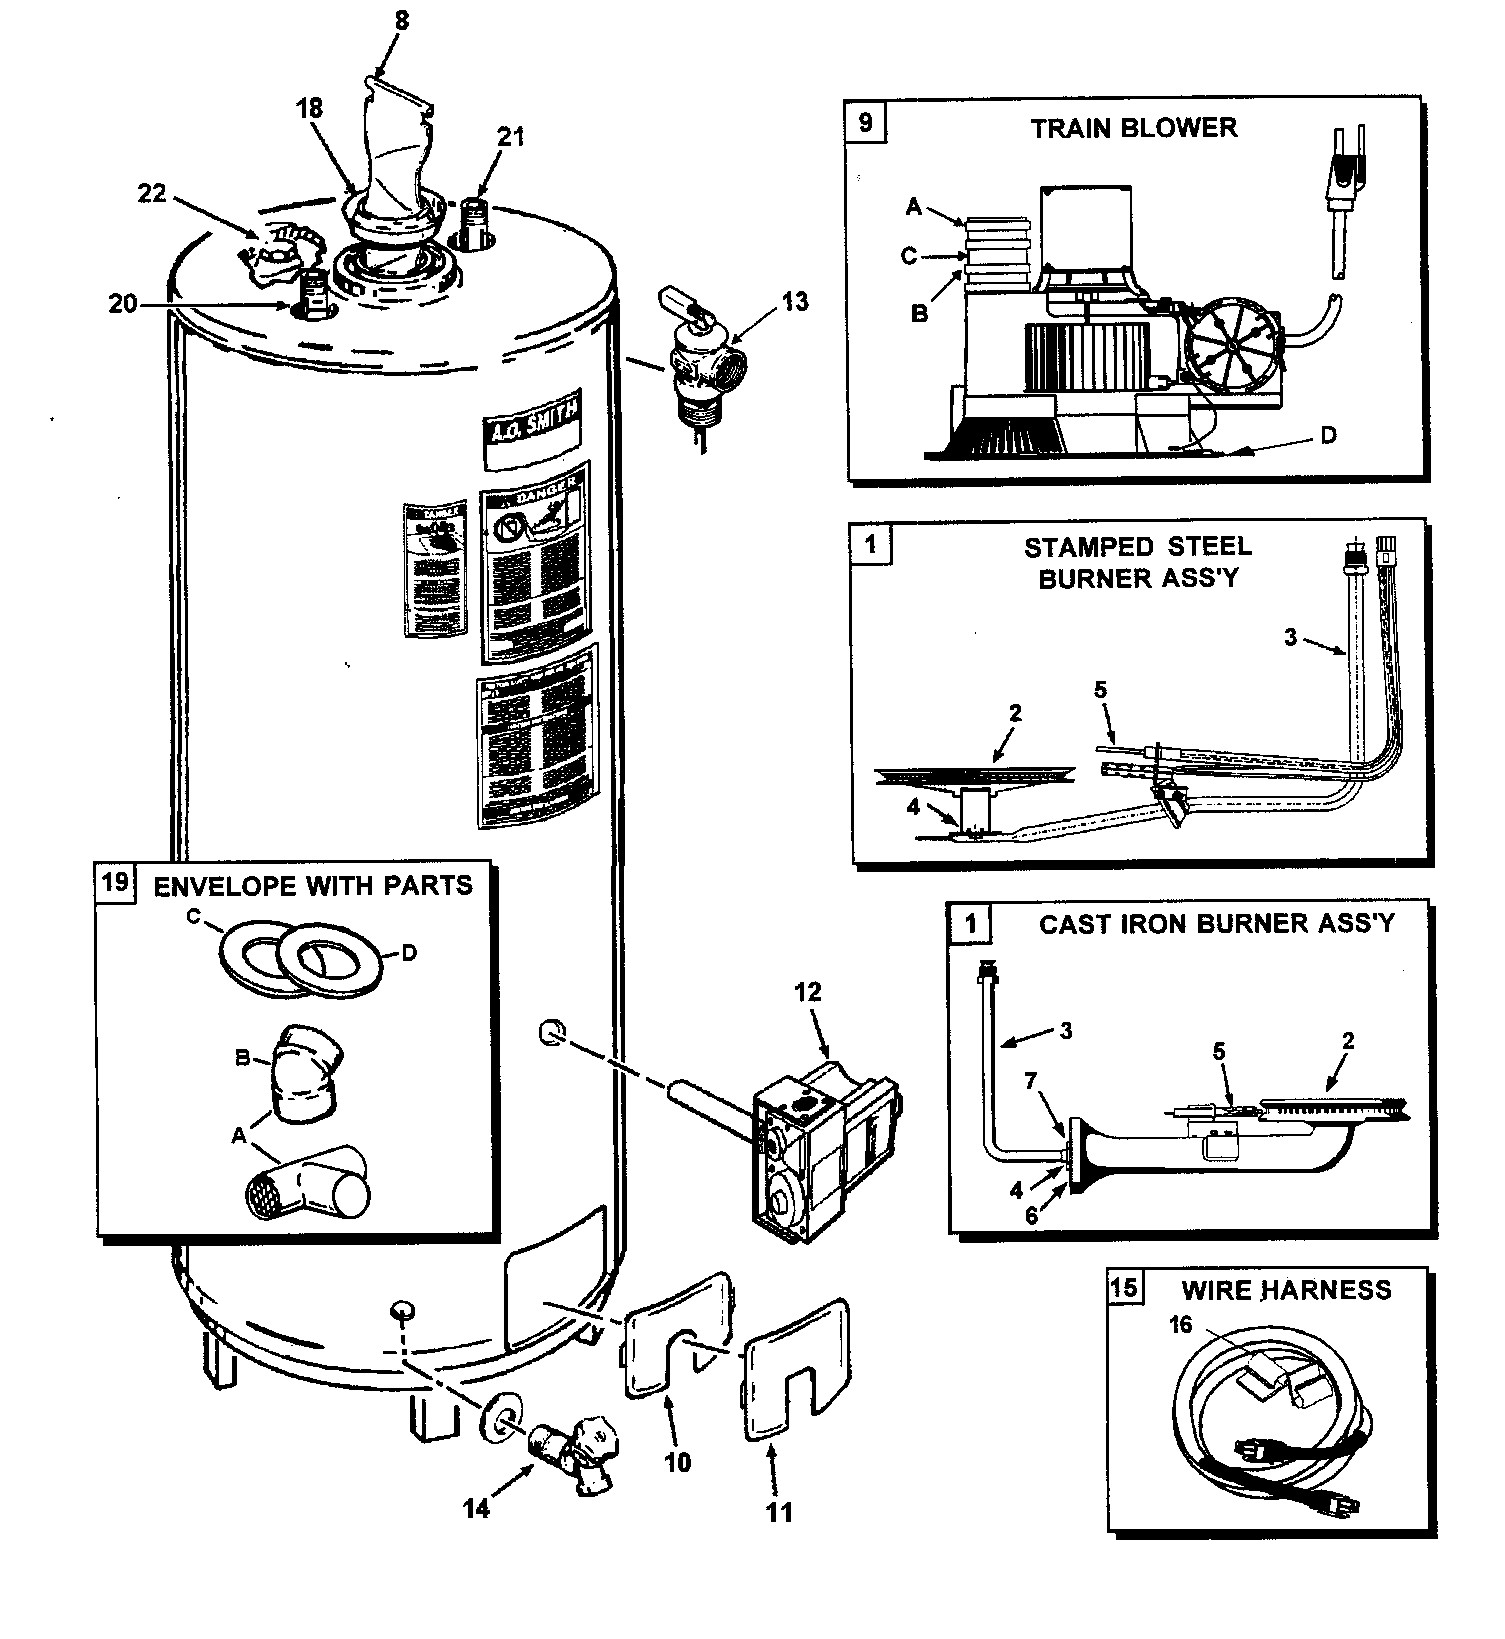 Space Heater Electric Motor Schematic